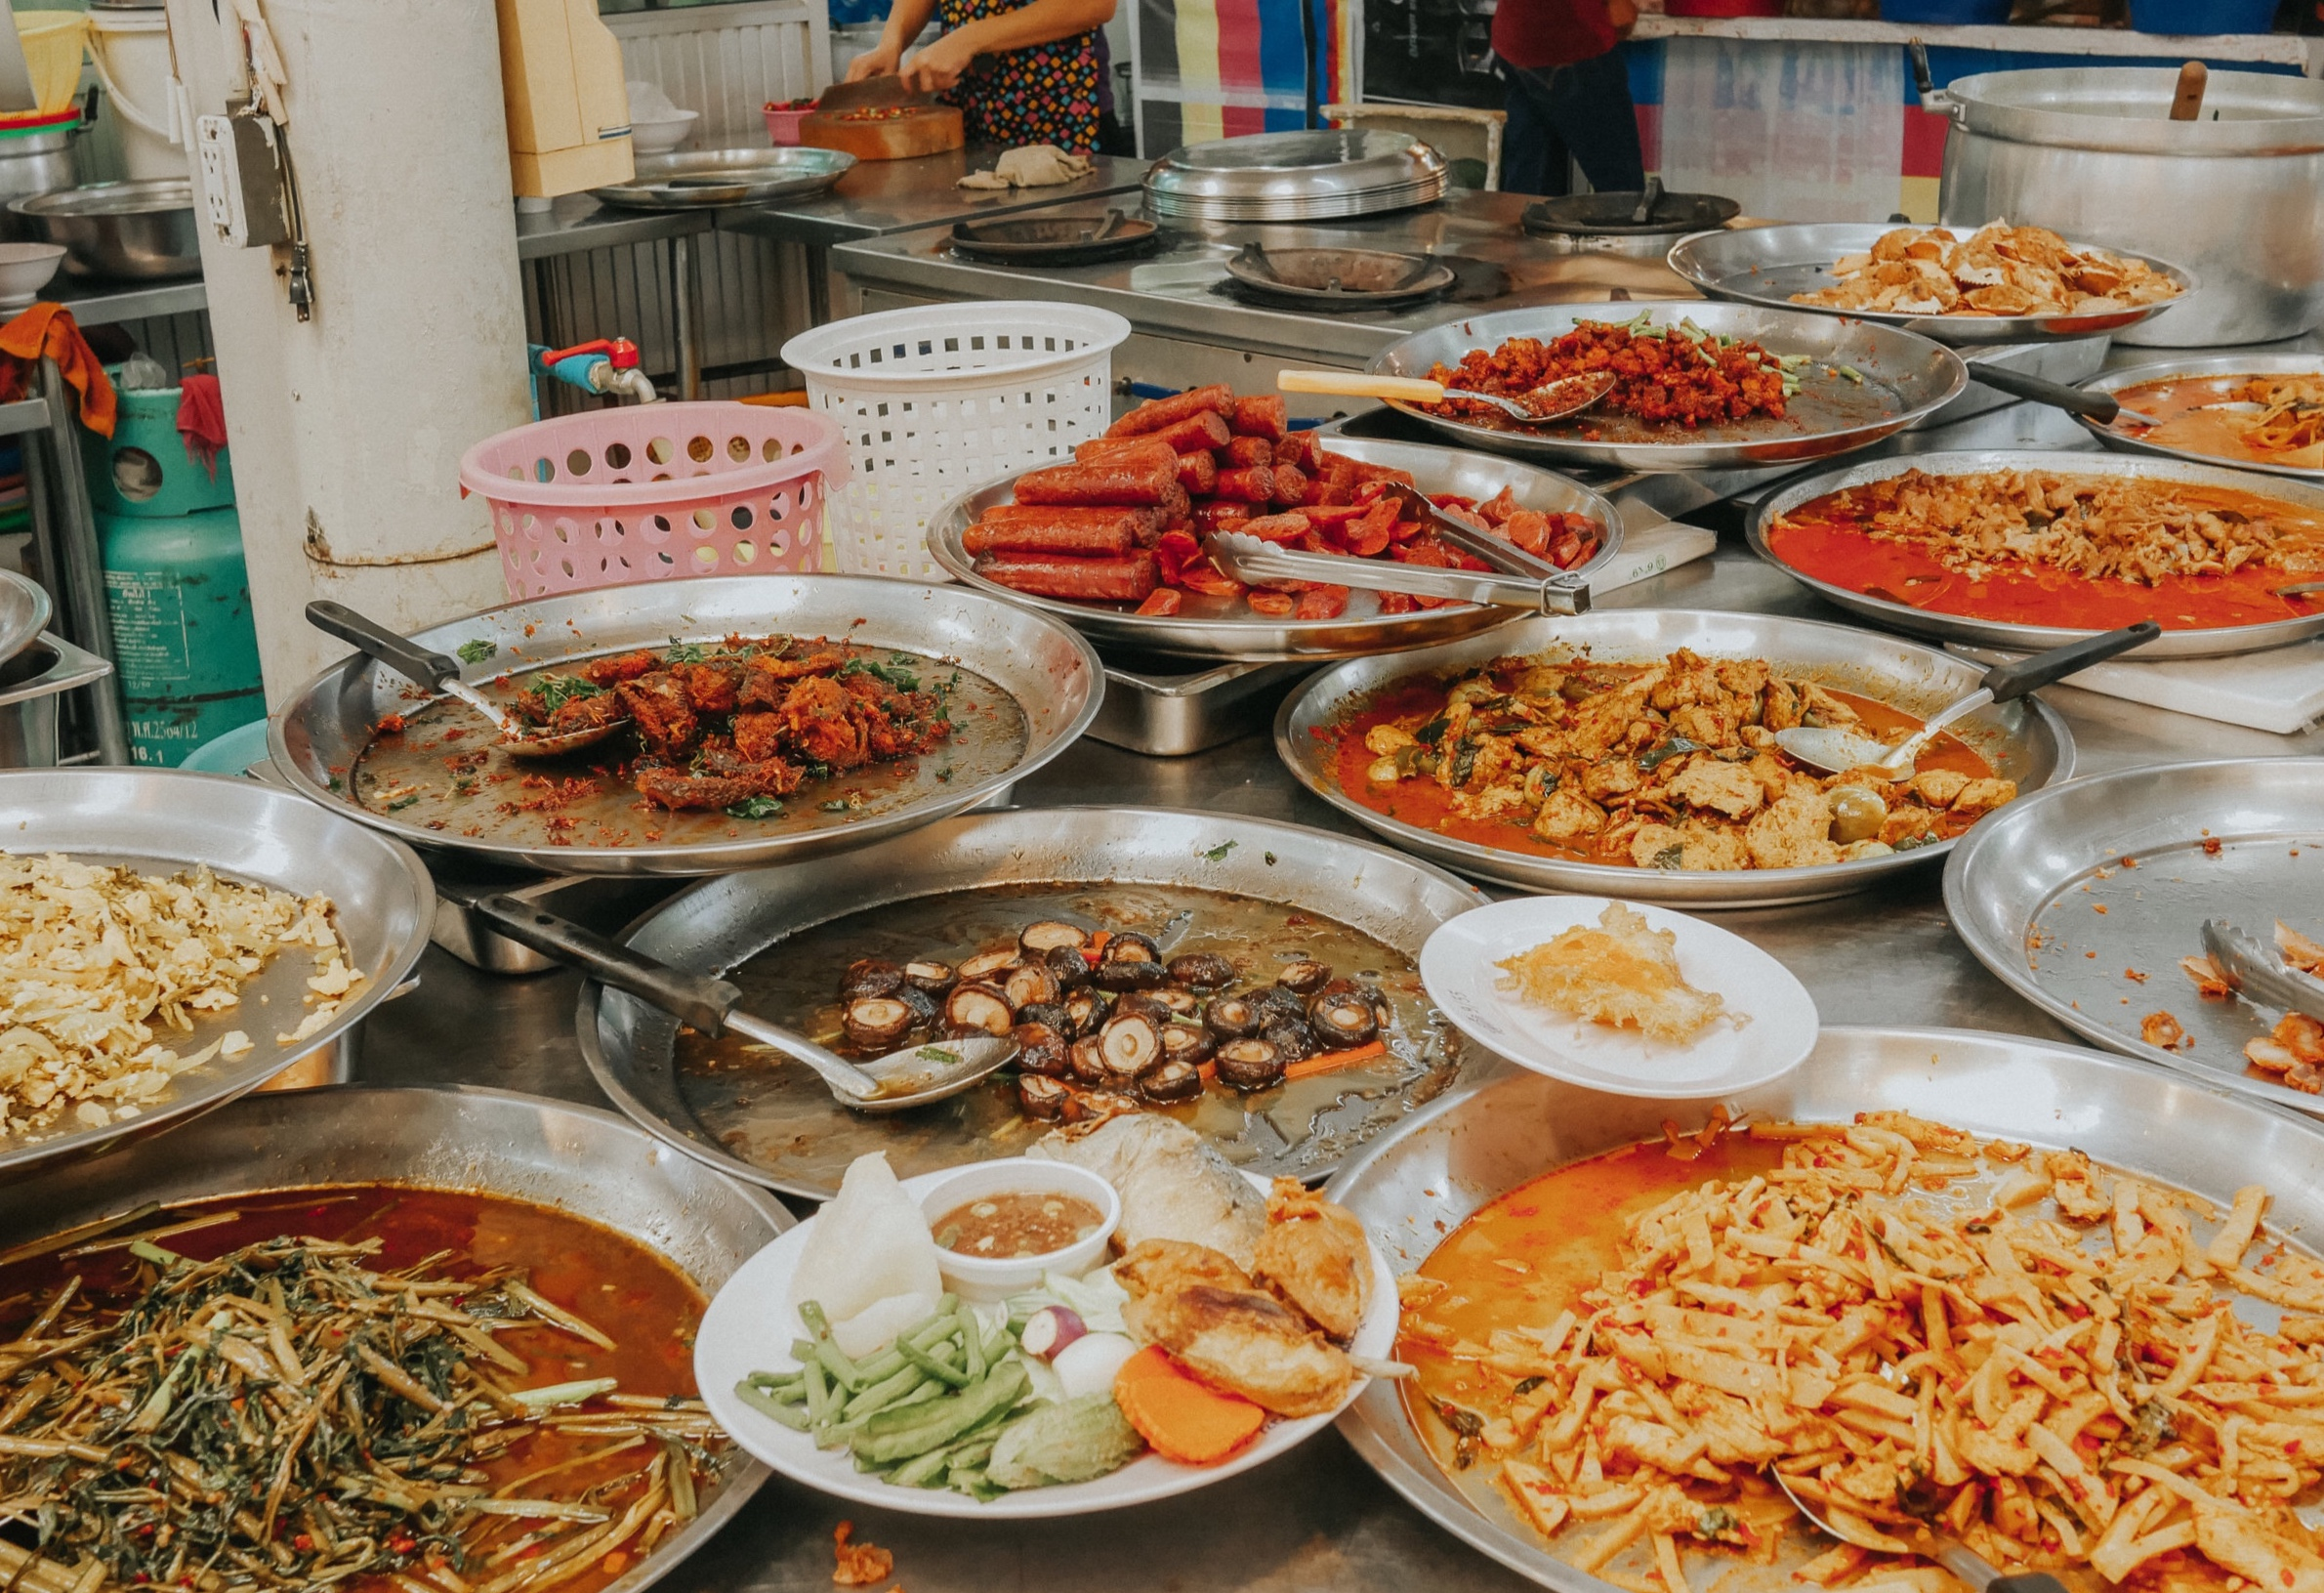 Many locals come to these markets to pack up dishes to take back home. When ordering, be sure to tell the stall workers that you are eating it for here, so they can serve the food in disposable dishes/bowls with utensils.